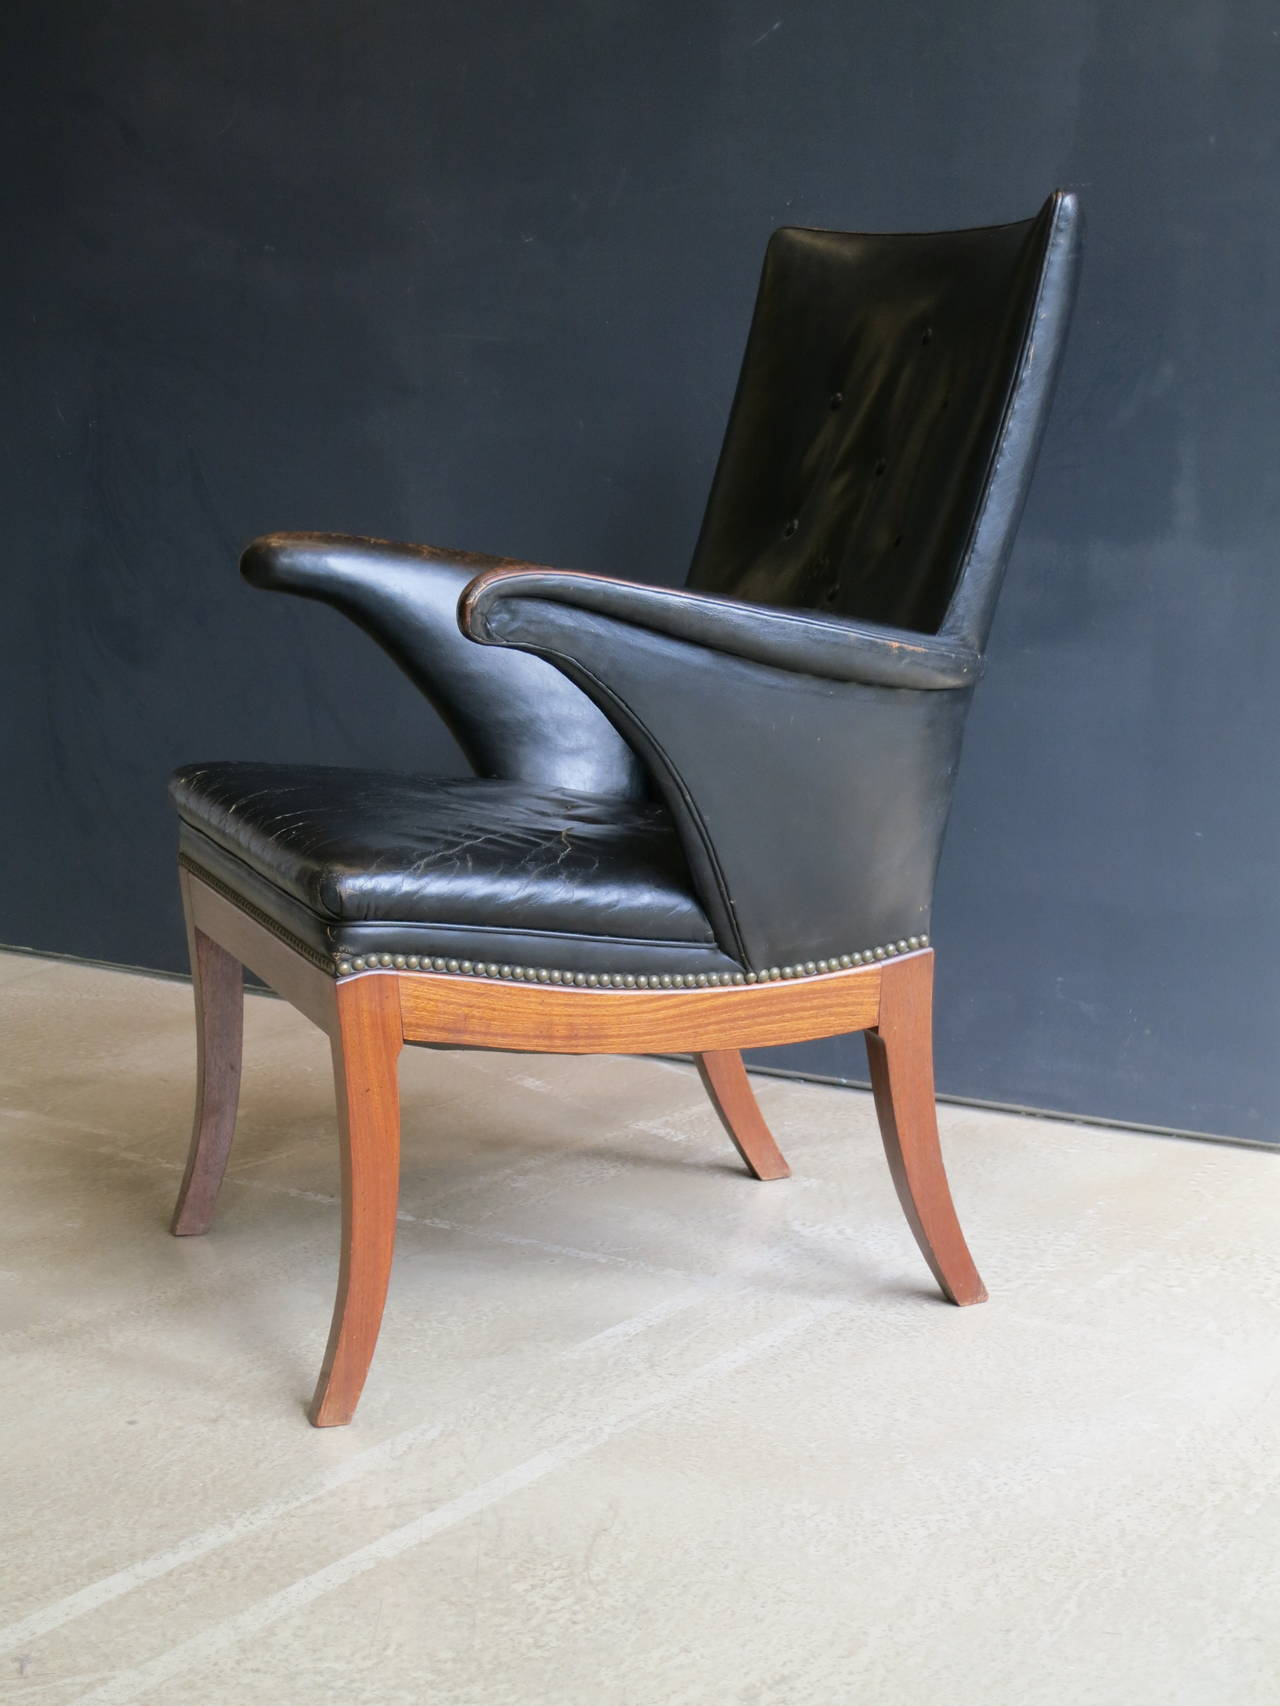 Mid-20th Century Armchair in Original Black-Brown Leather by Frits Henningsen, 1930s For Sale